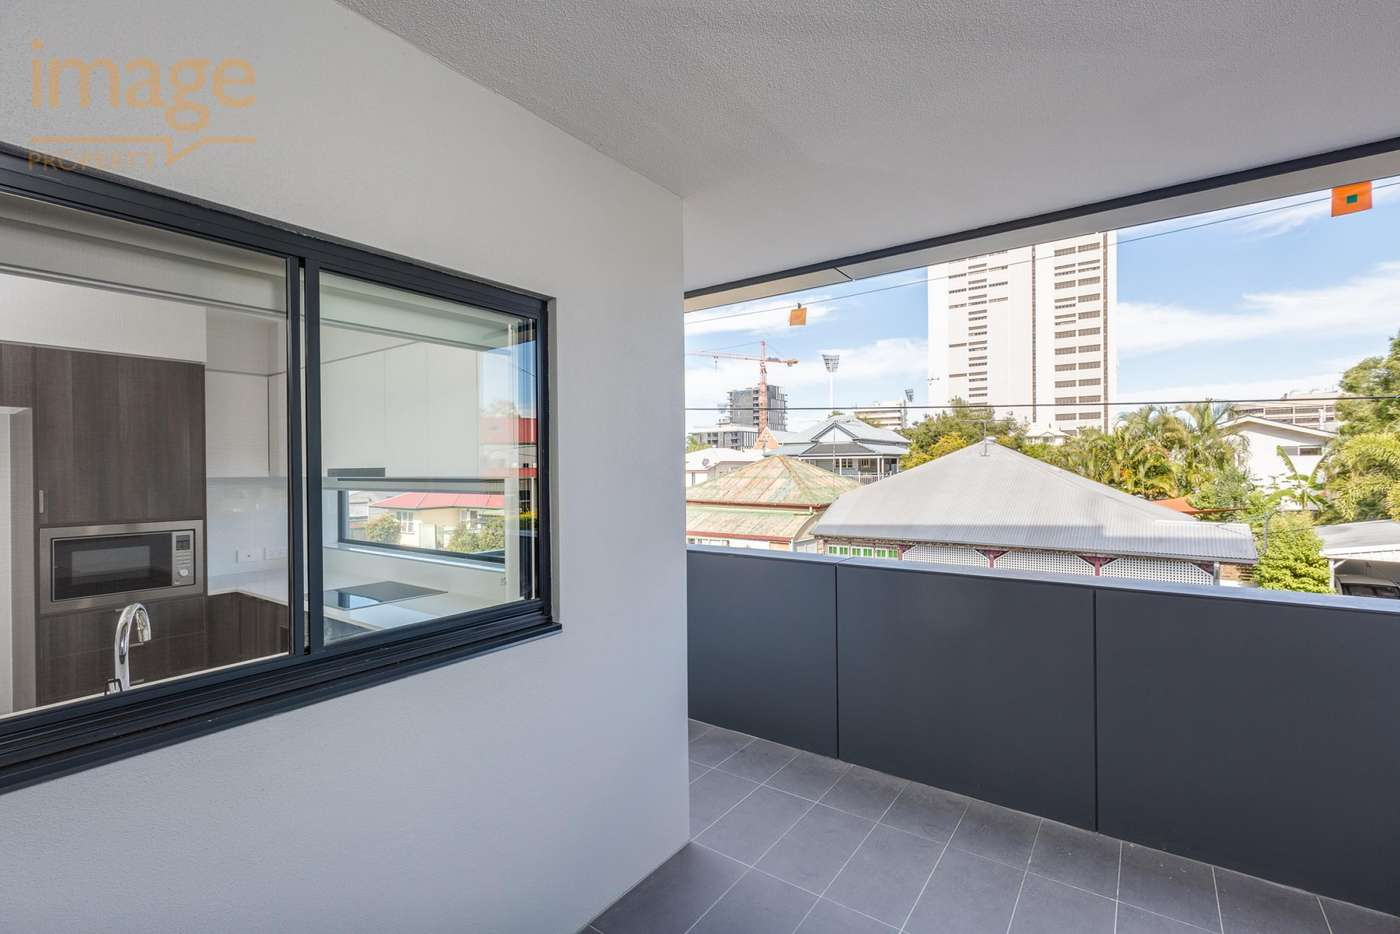 Seventh view of Homely unit listing, 302/24 Bromley Street, Kangaroo Point QLD 4169